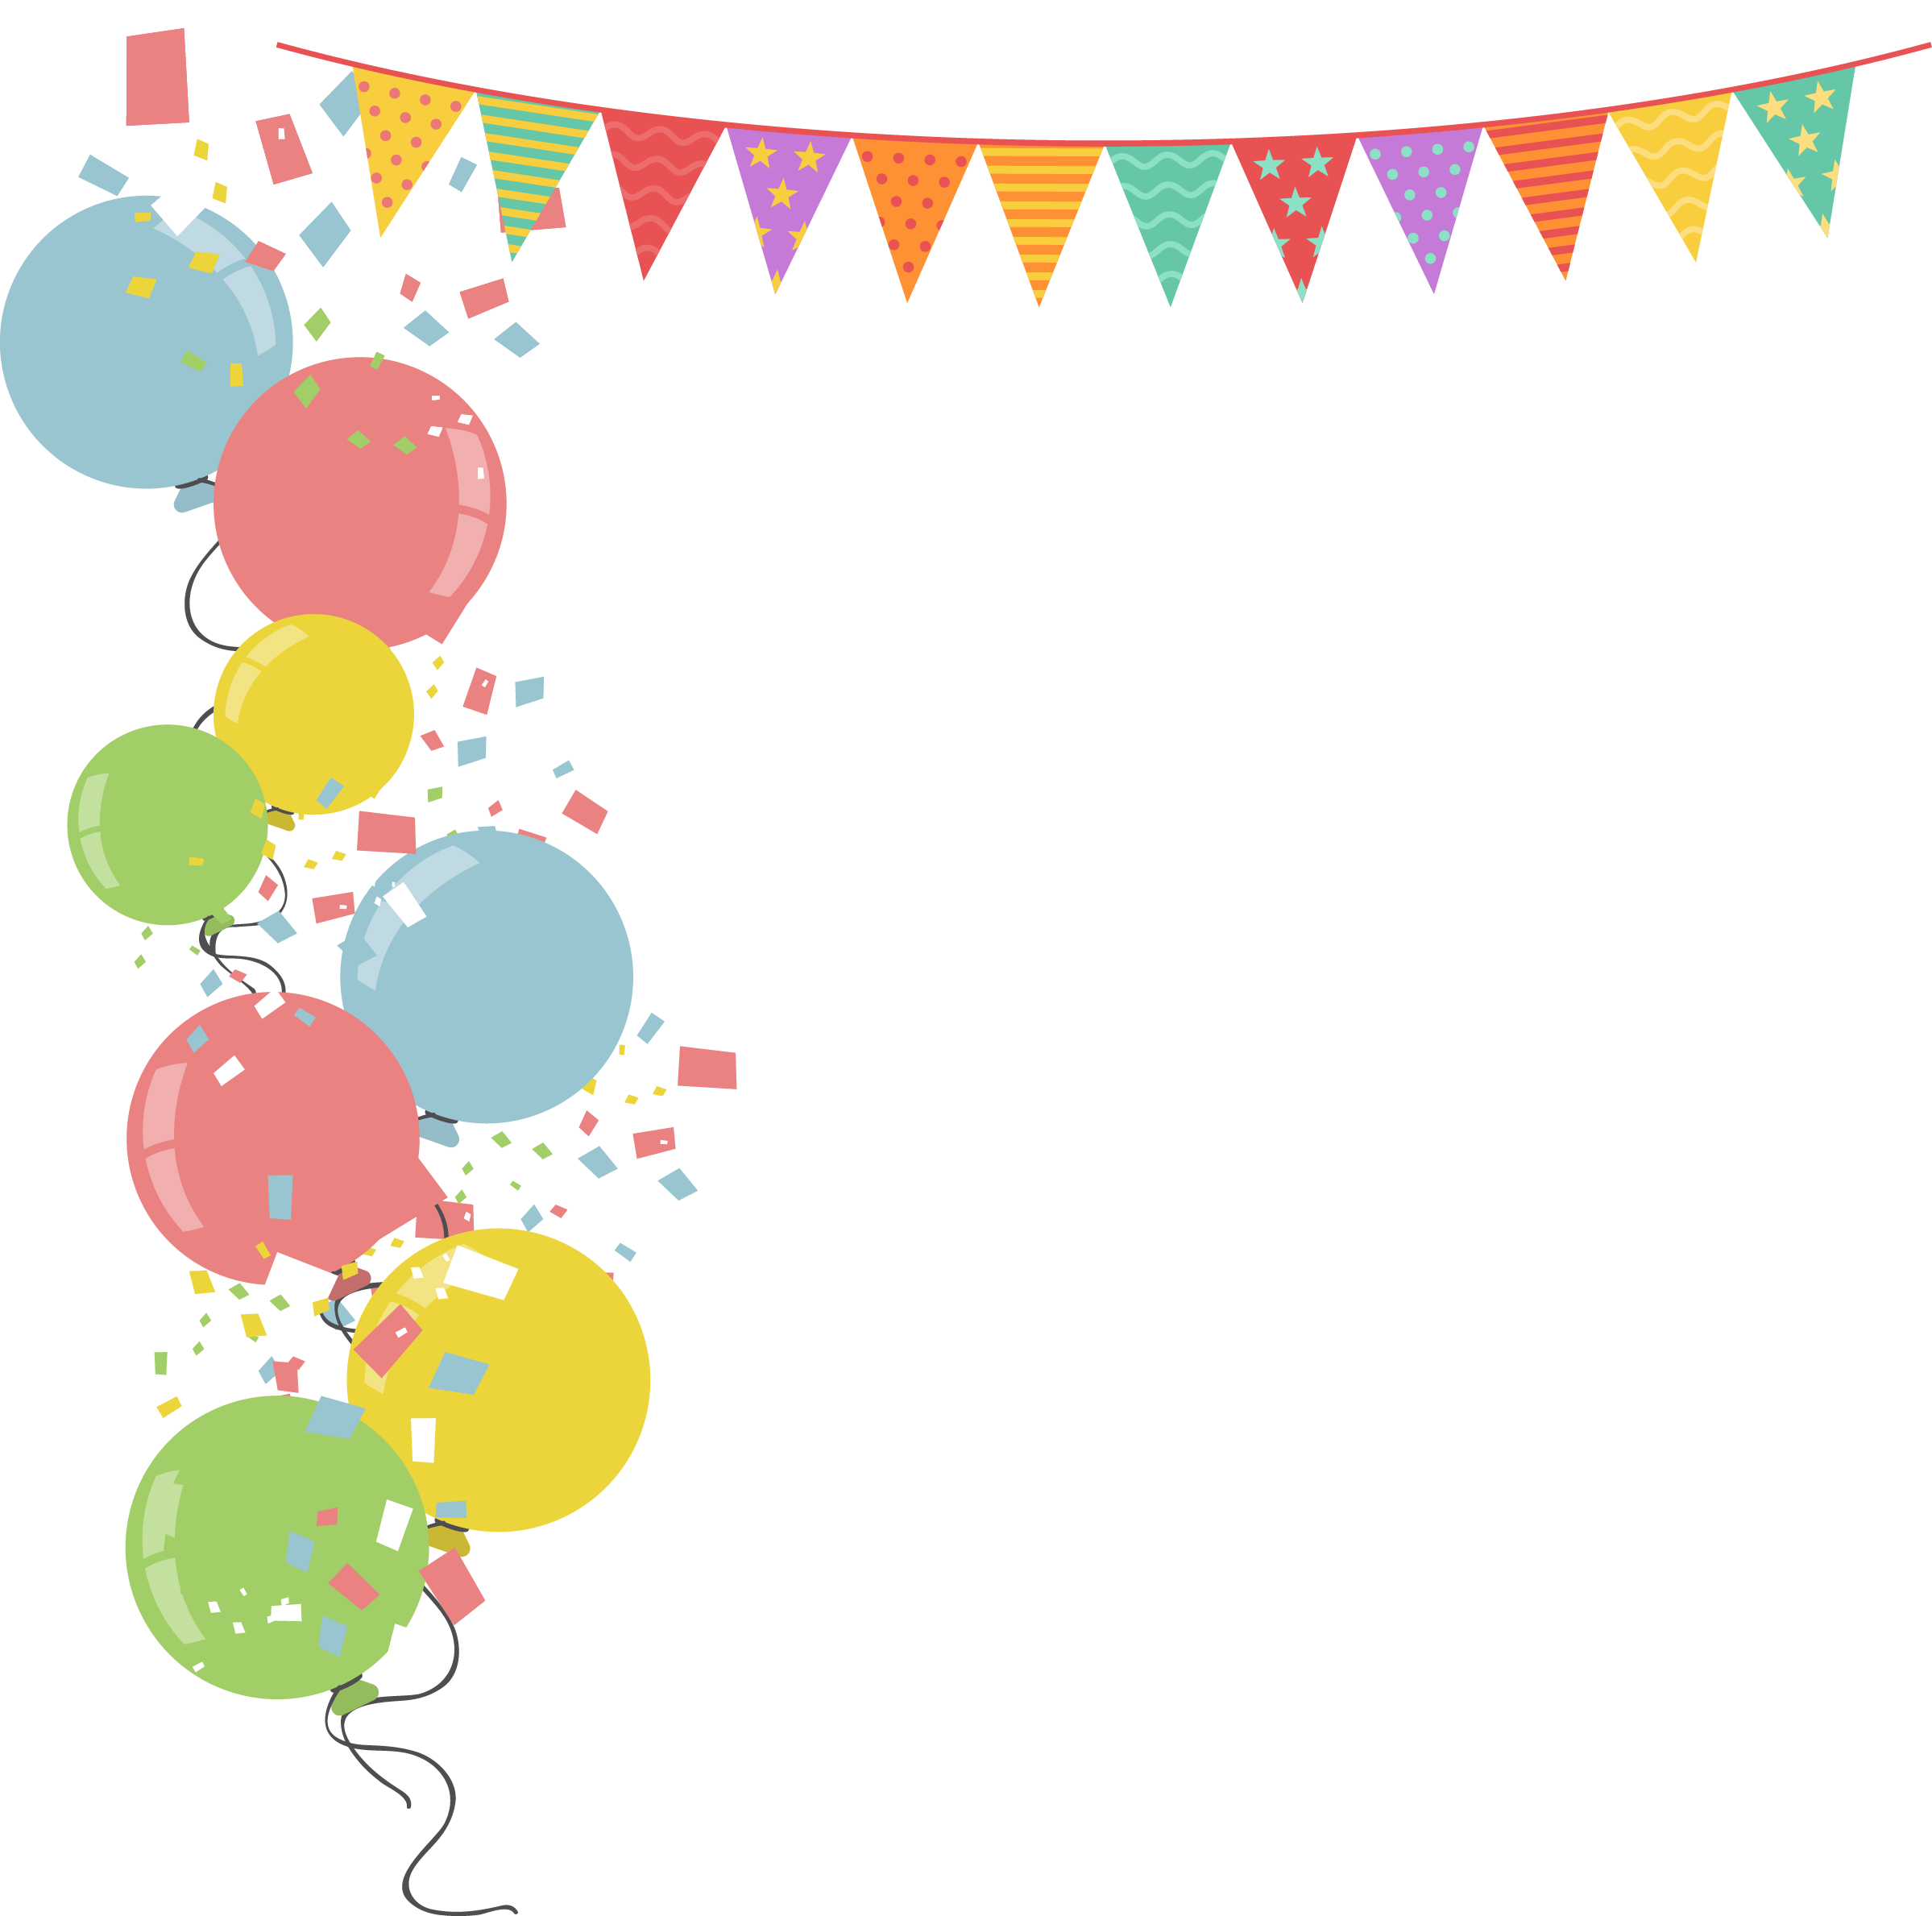 Balloon border png. Party stock illustration colorful